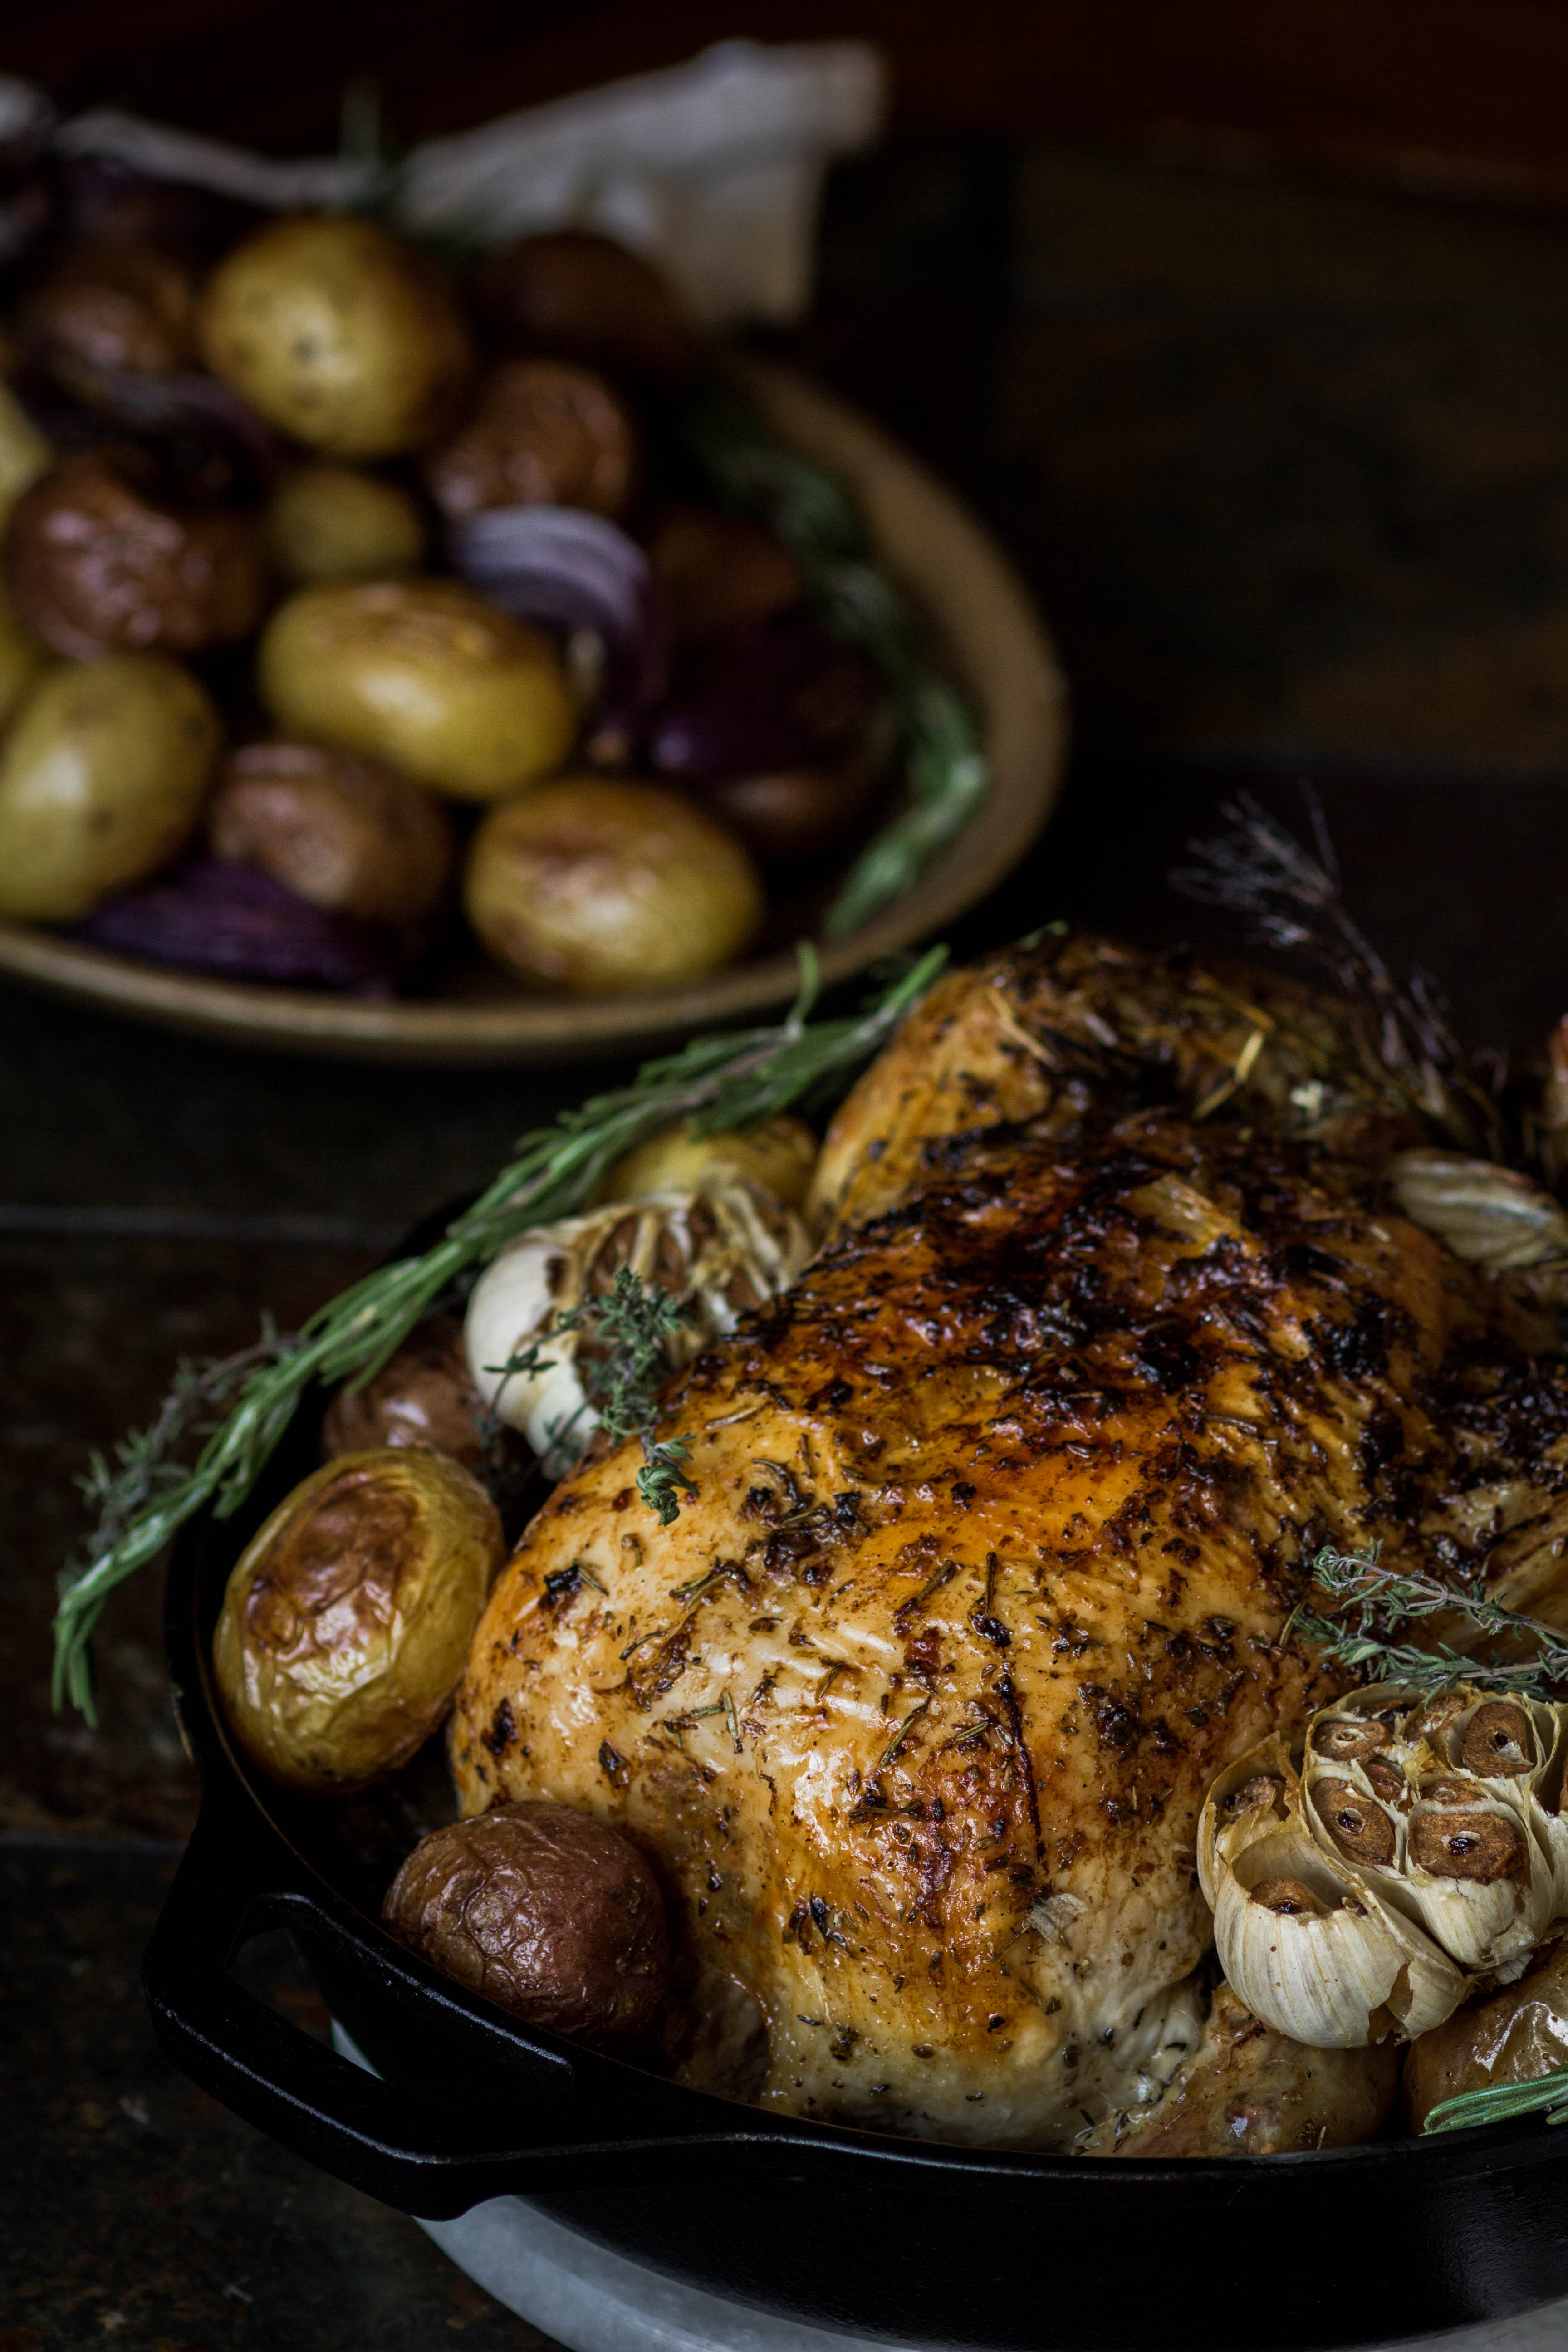 Roasted Chicken with Potatoes from Boiled Wheat Blog by Kristen McSorley, Bozeman Area Photographer